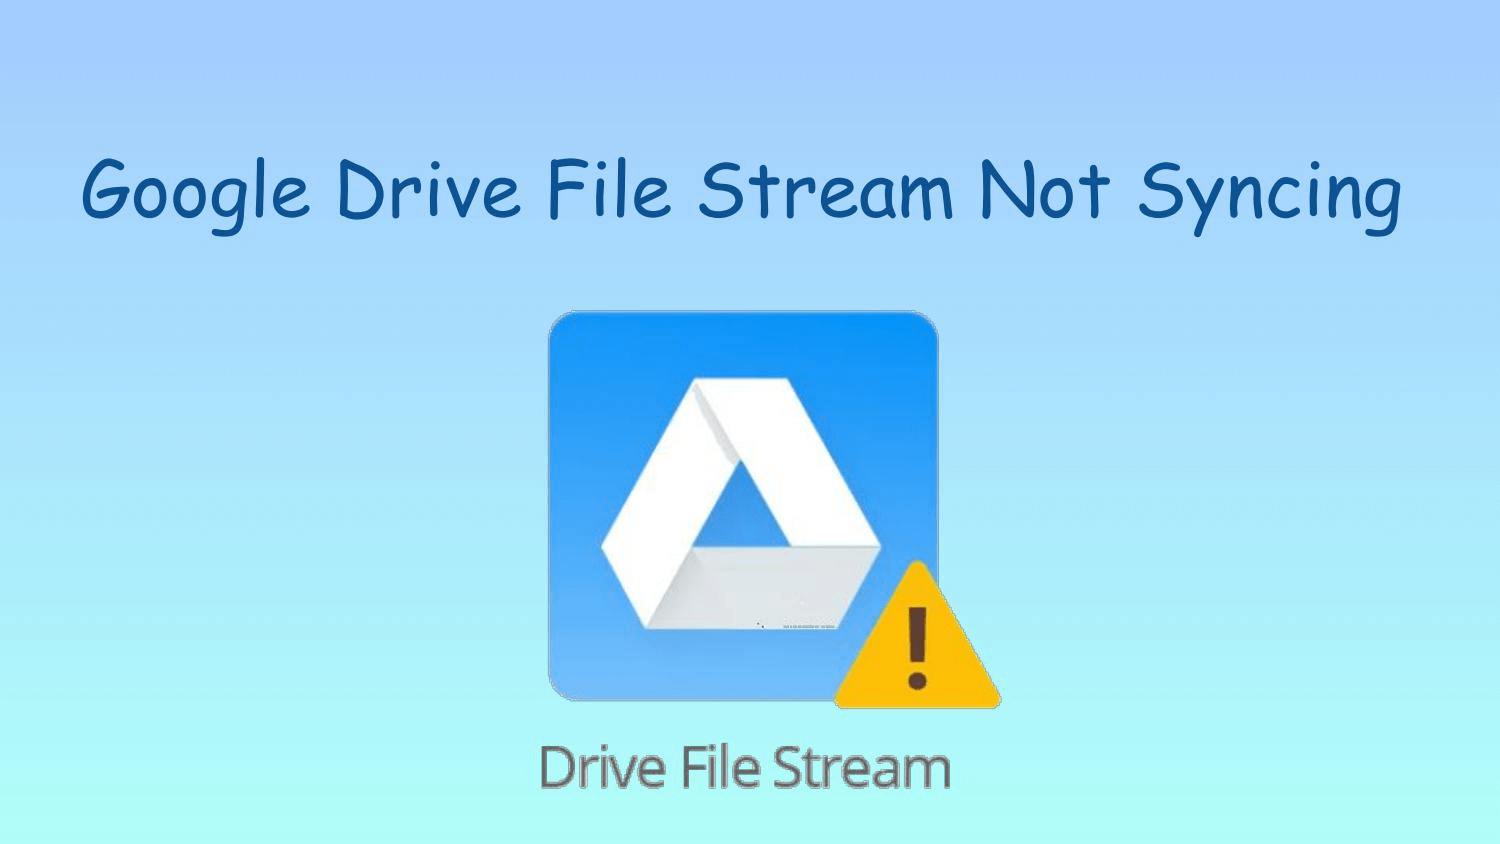 Google Drive File Stream Not Syncing